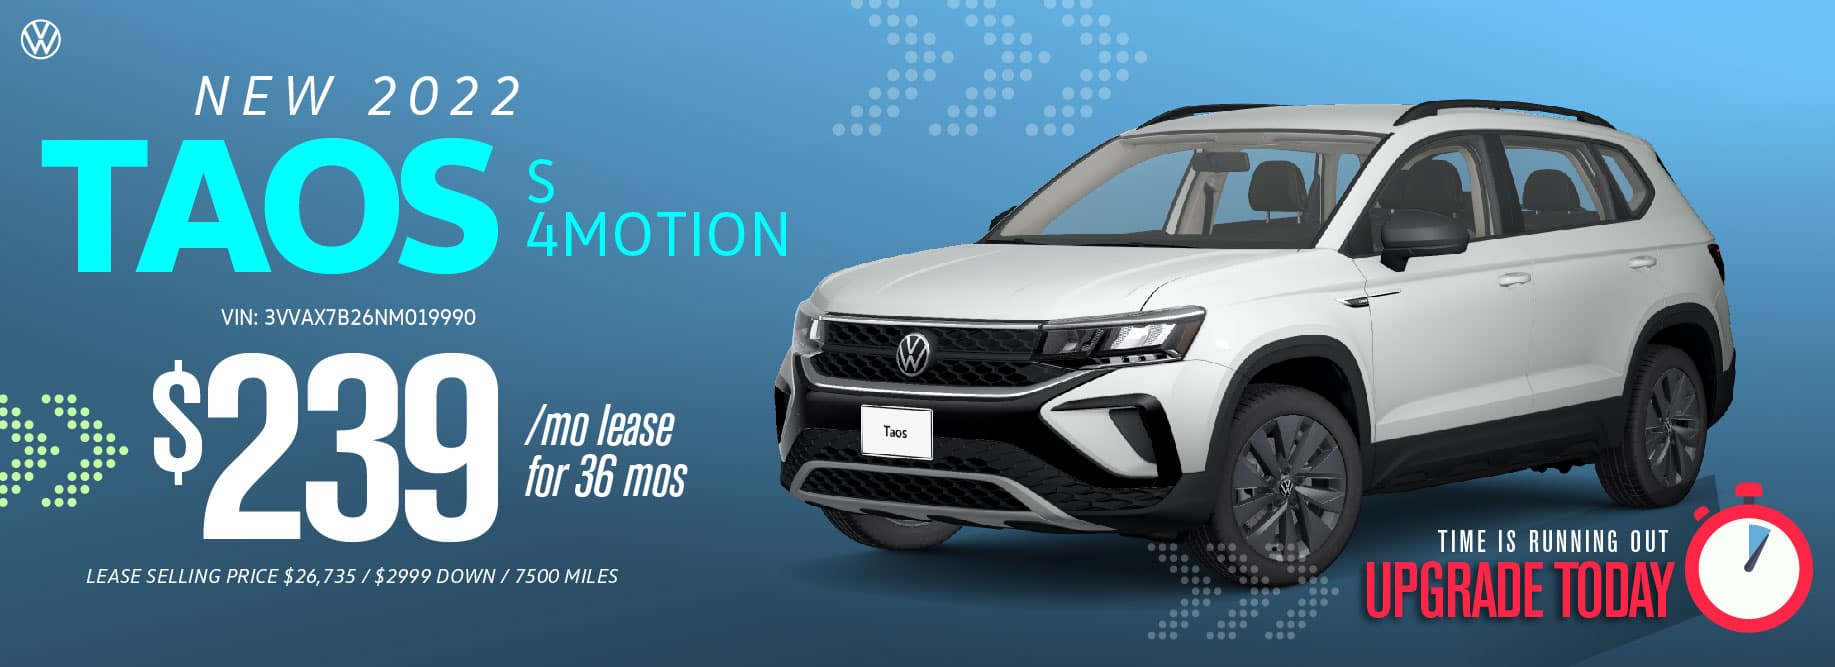 Lease the 2022 Taos starting at $239/mo at VW SouthTowne